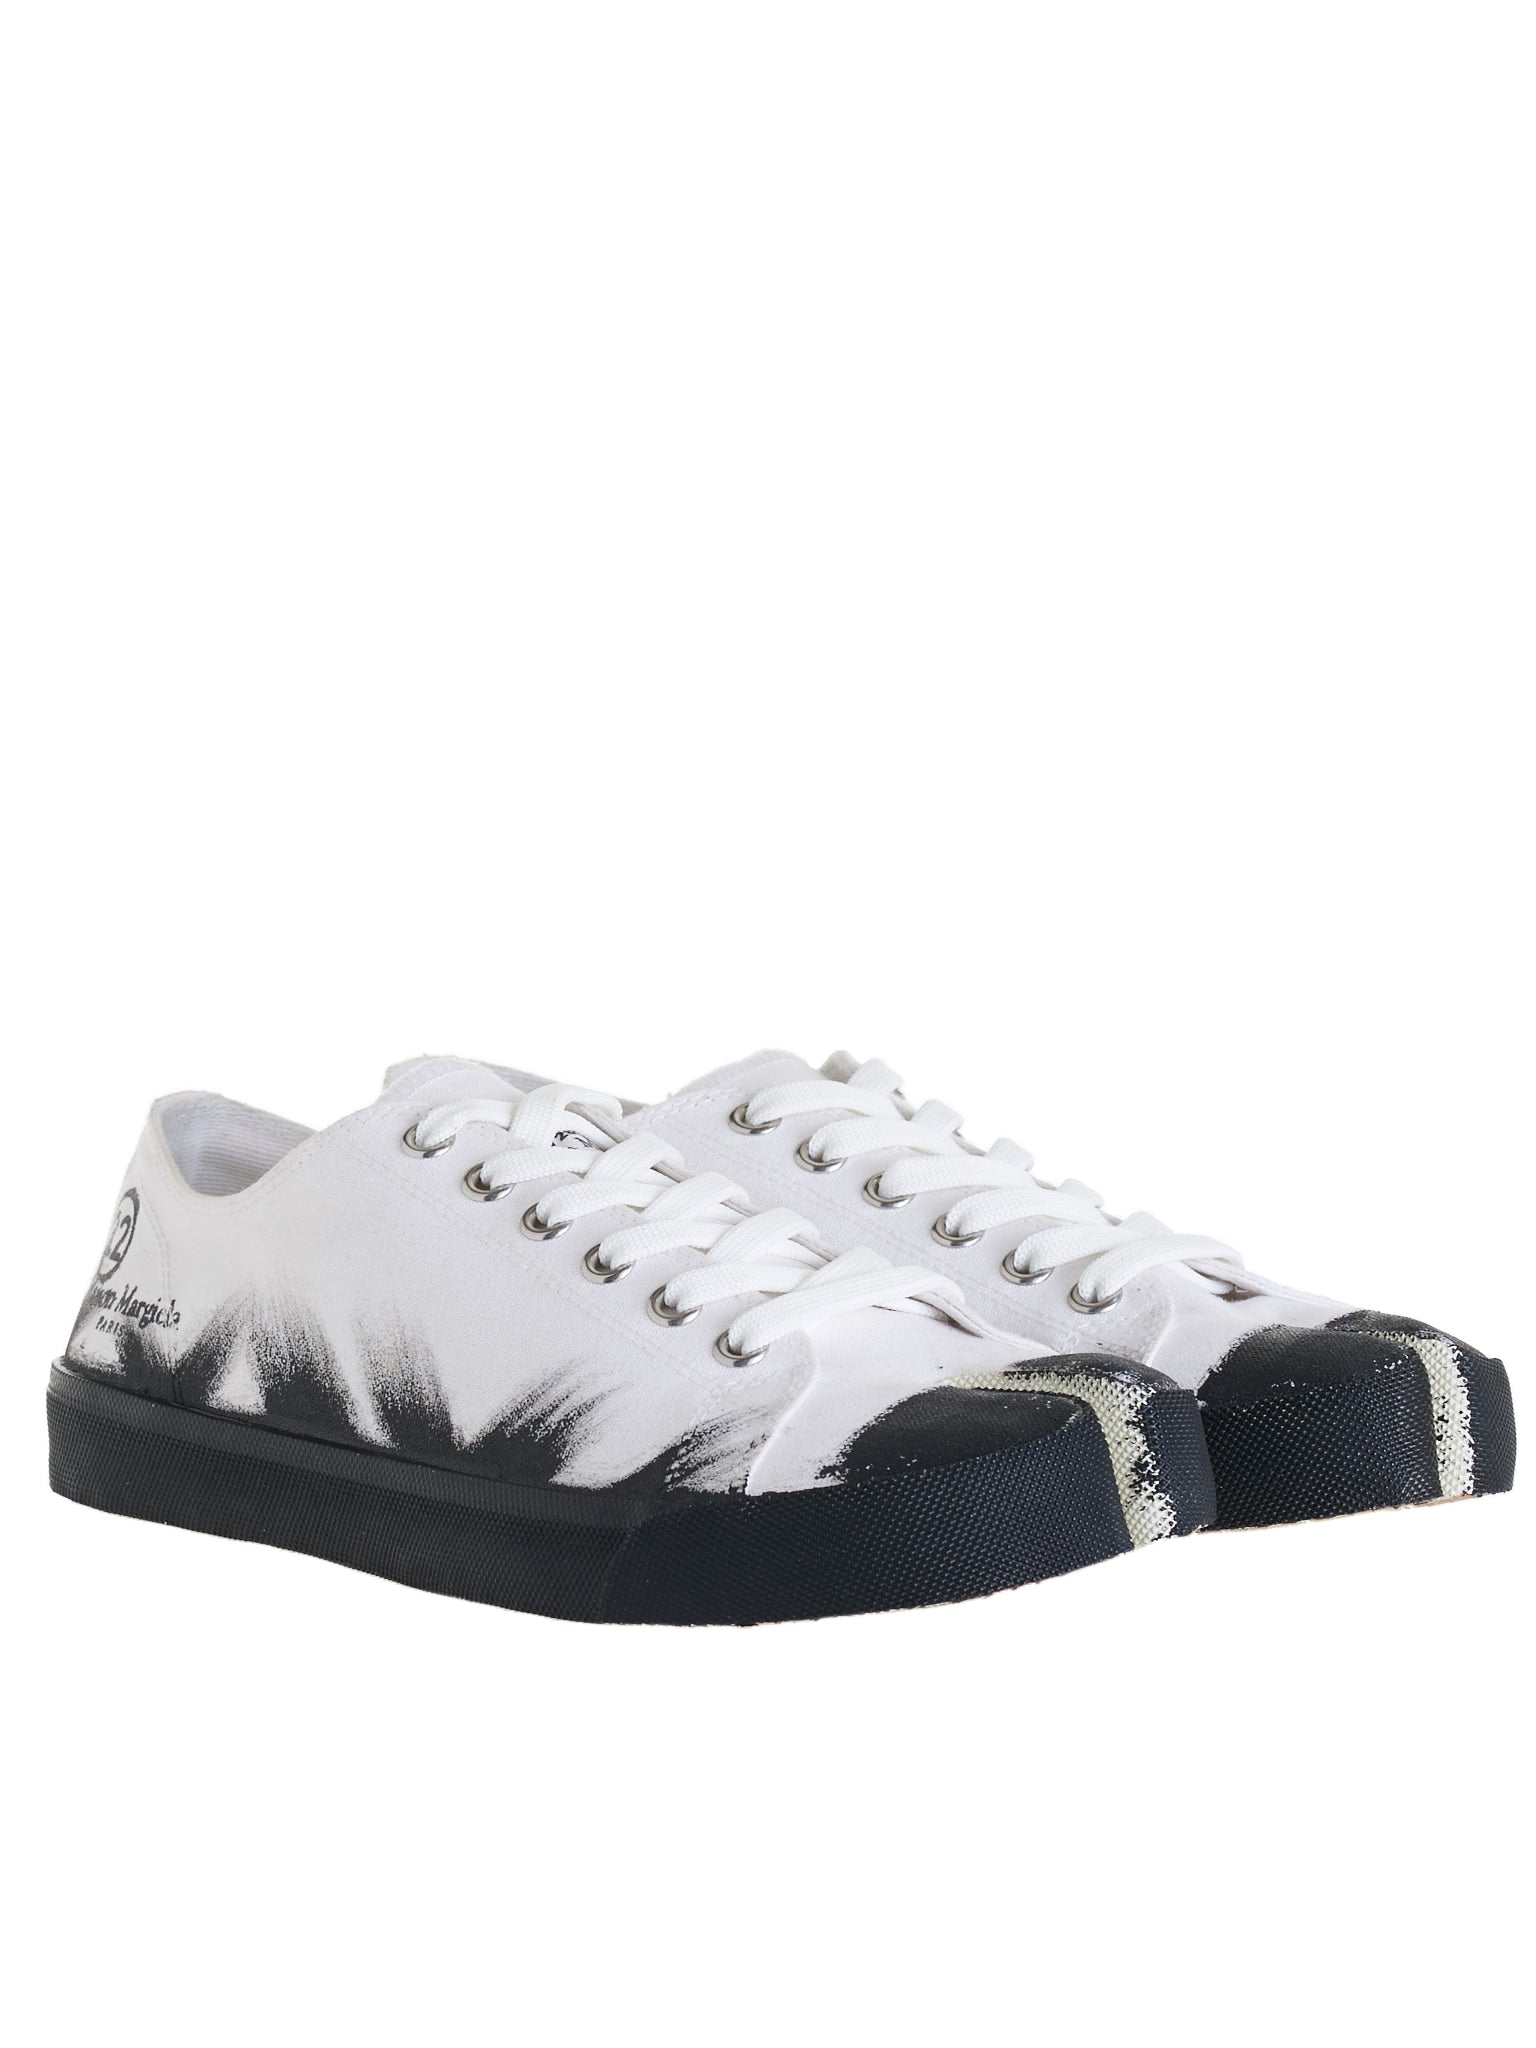 Painted Low-Top Canvas Sneakers (S37WS0495-P3719-WHITE-BLACK)